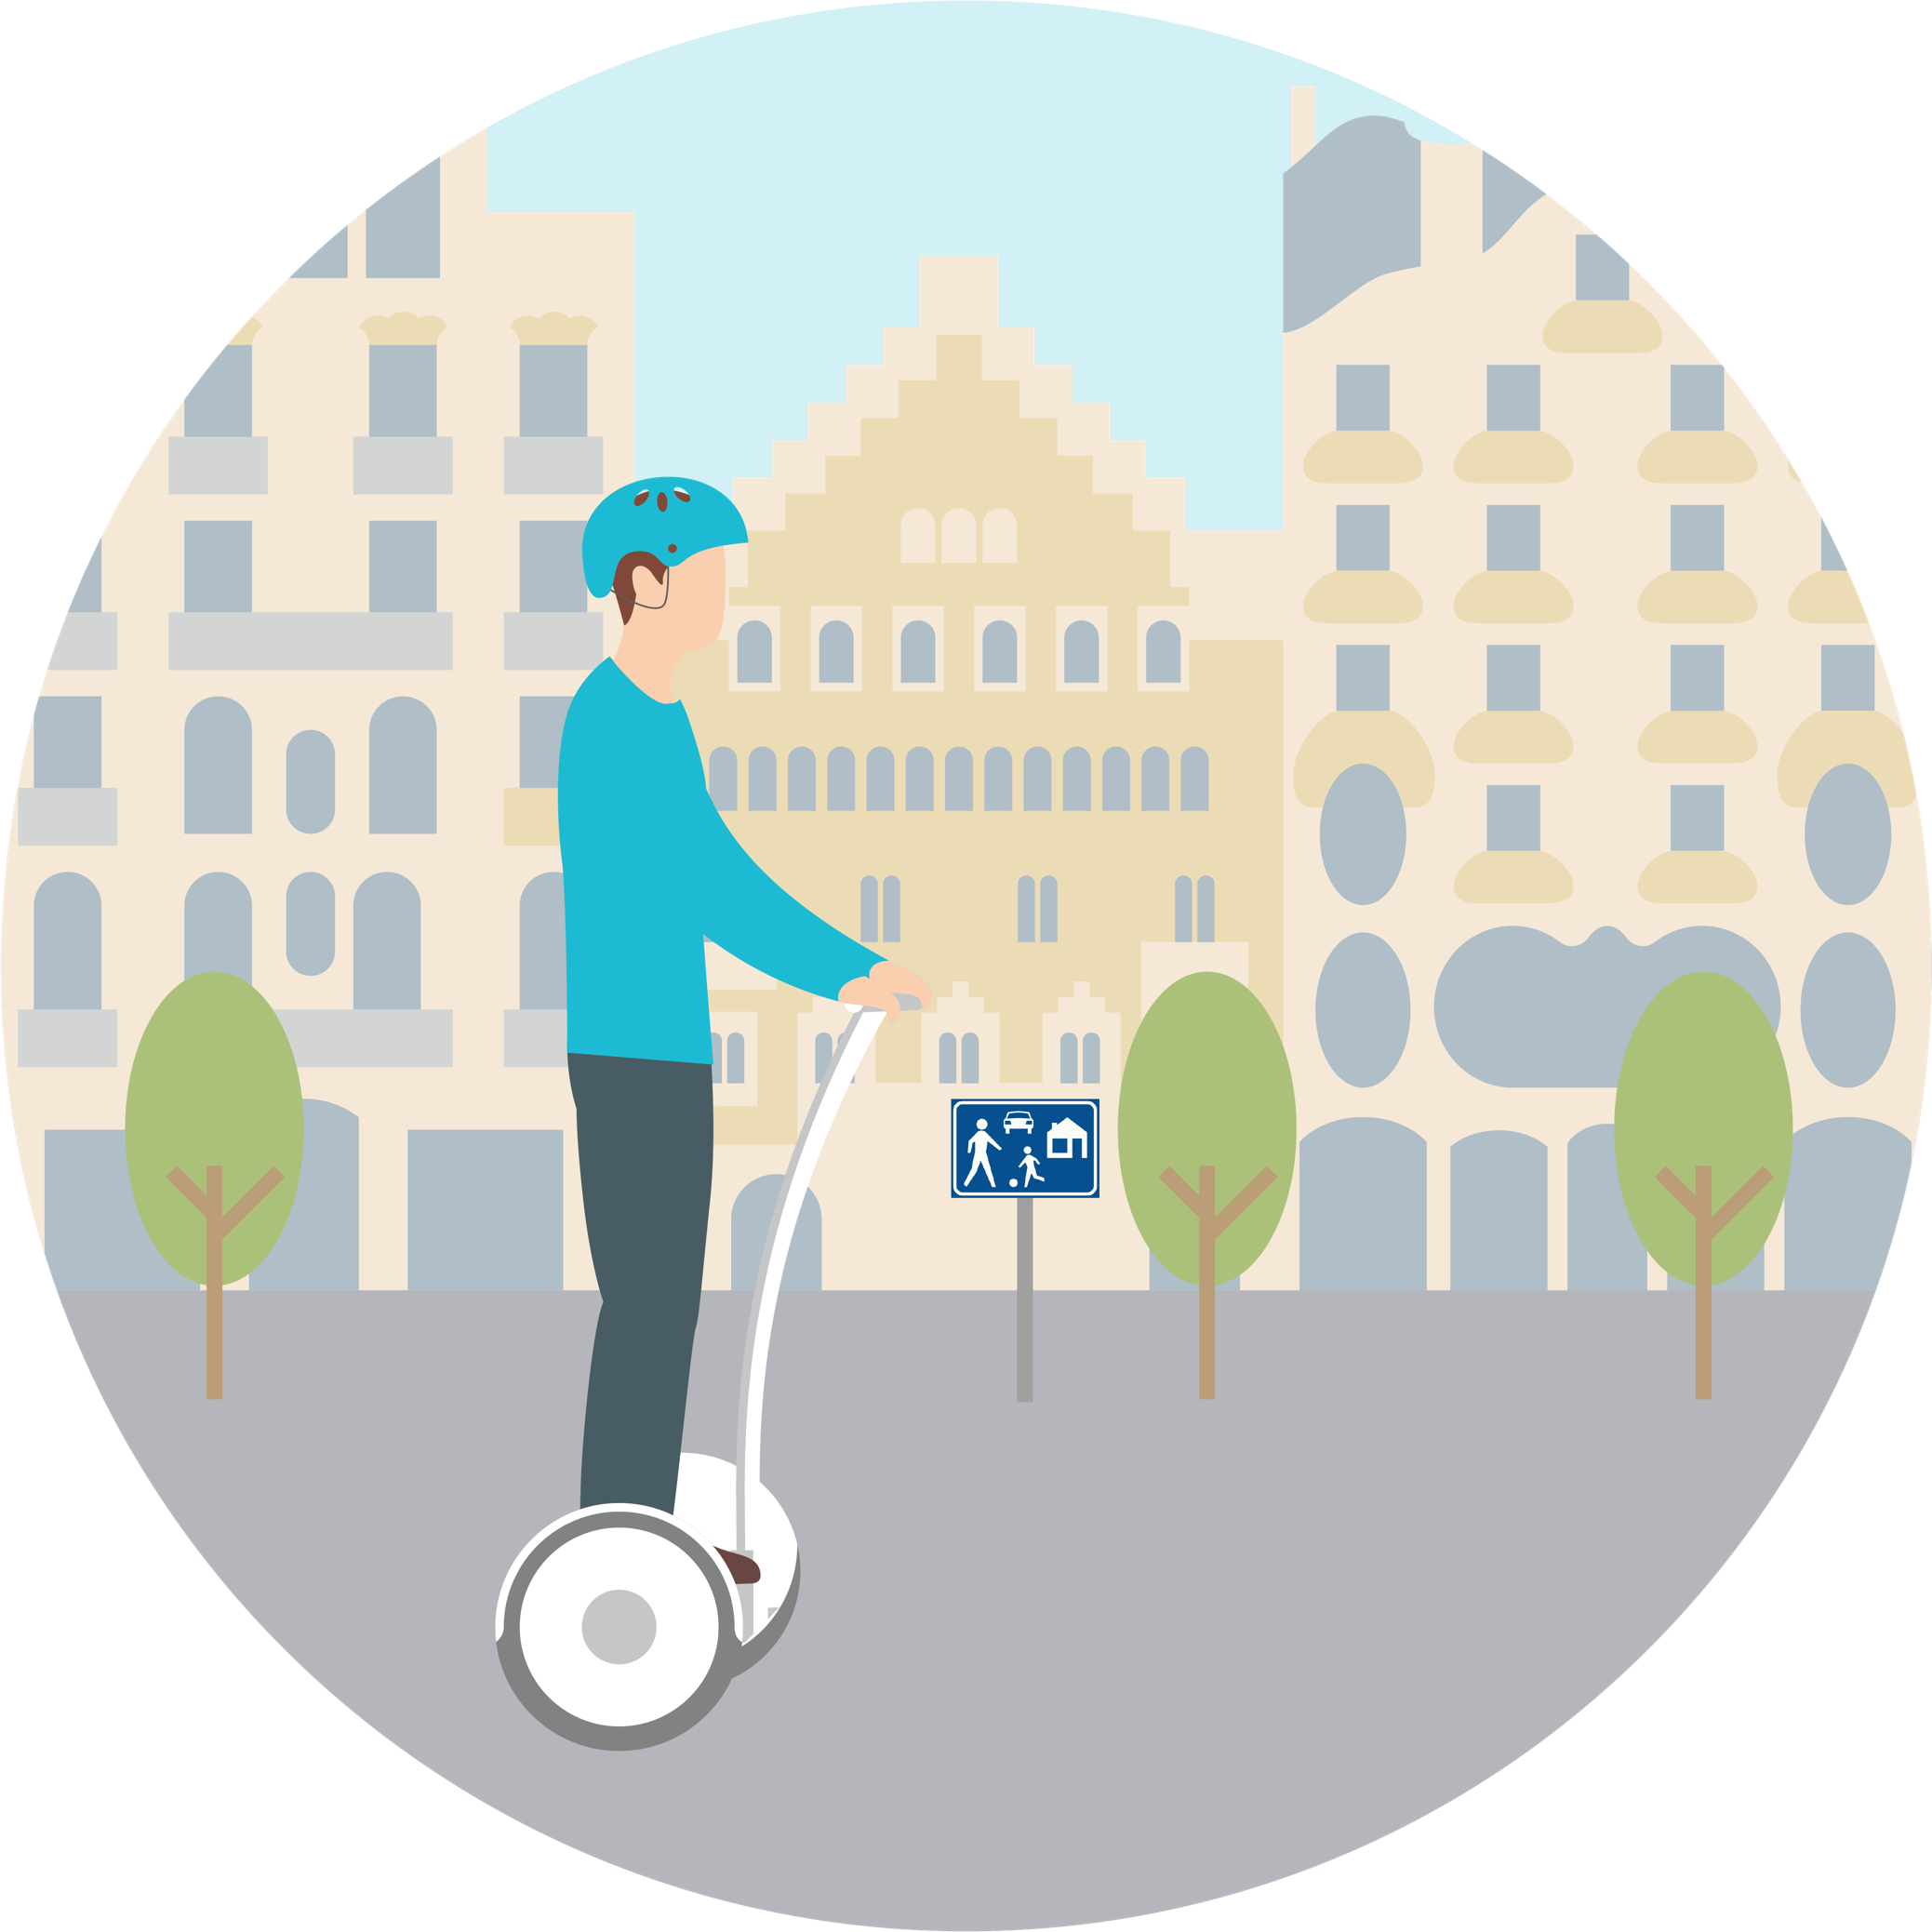 Can I ride electric scooters on the pedestrian zones in Barcelona?